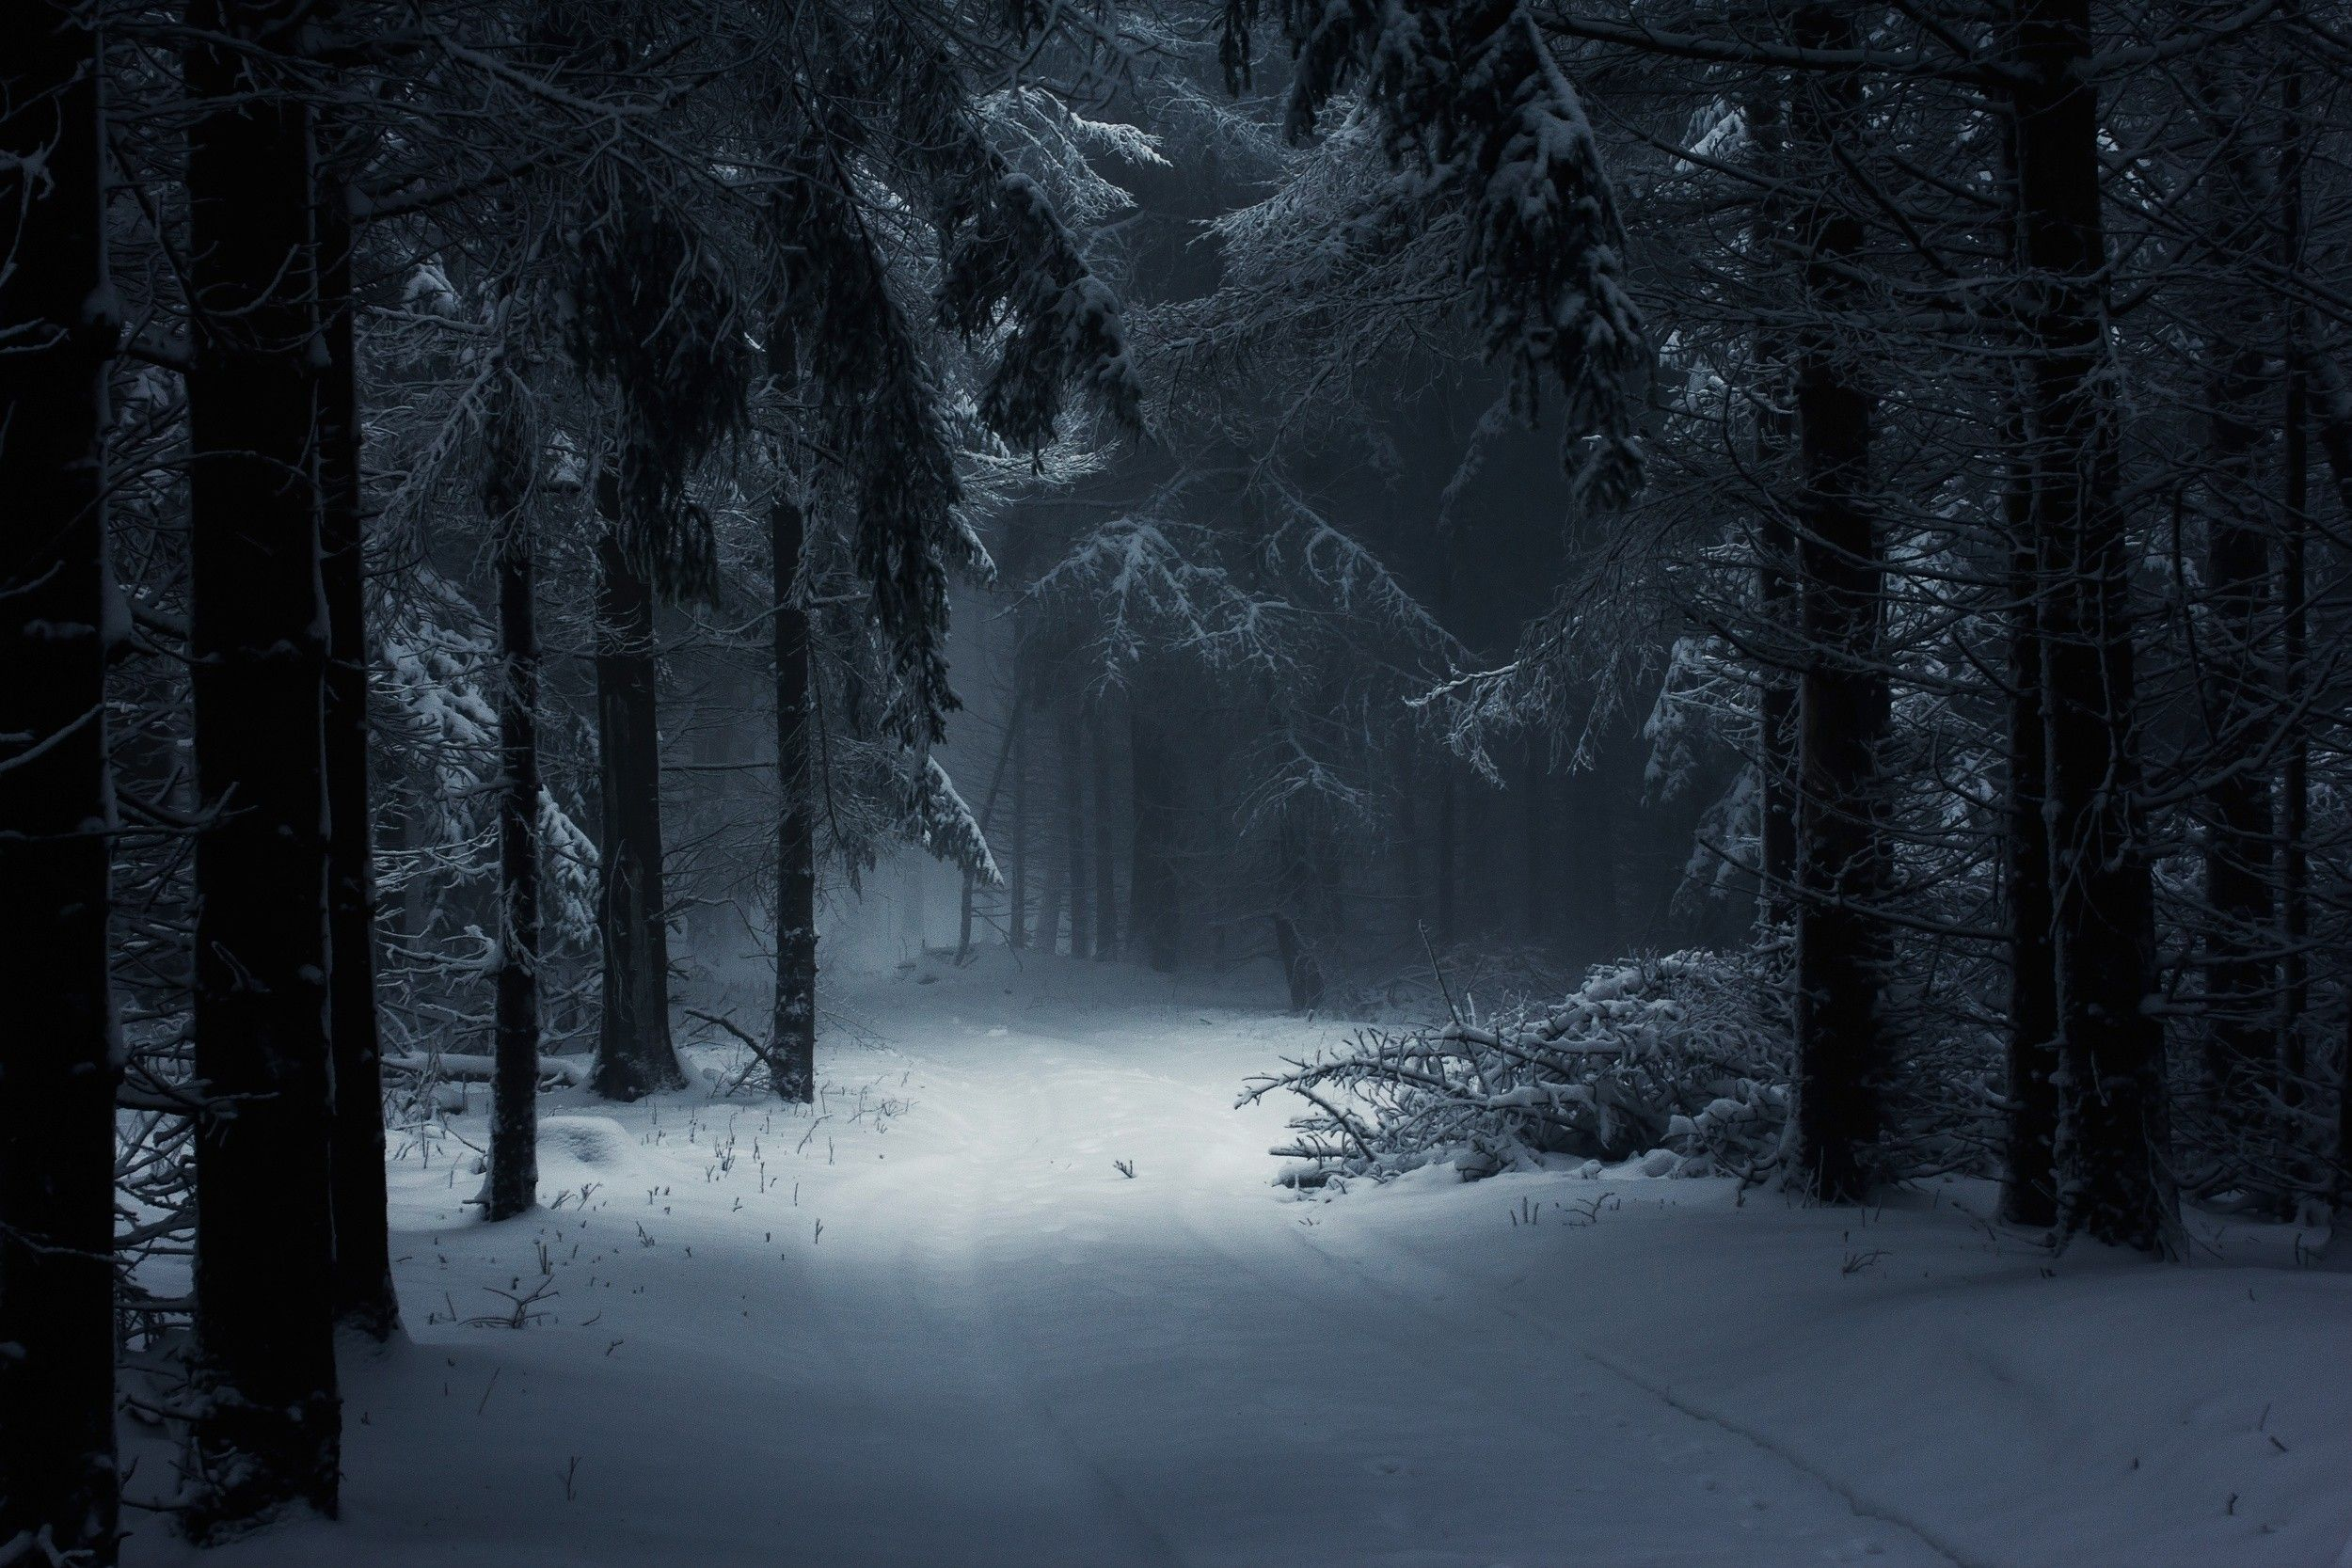 landscape nature winter forest snow mist daylight path trees